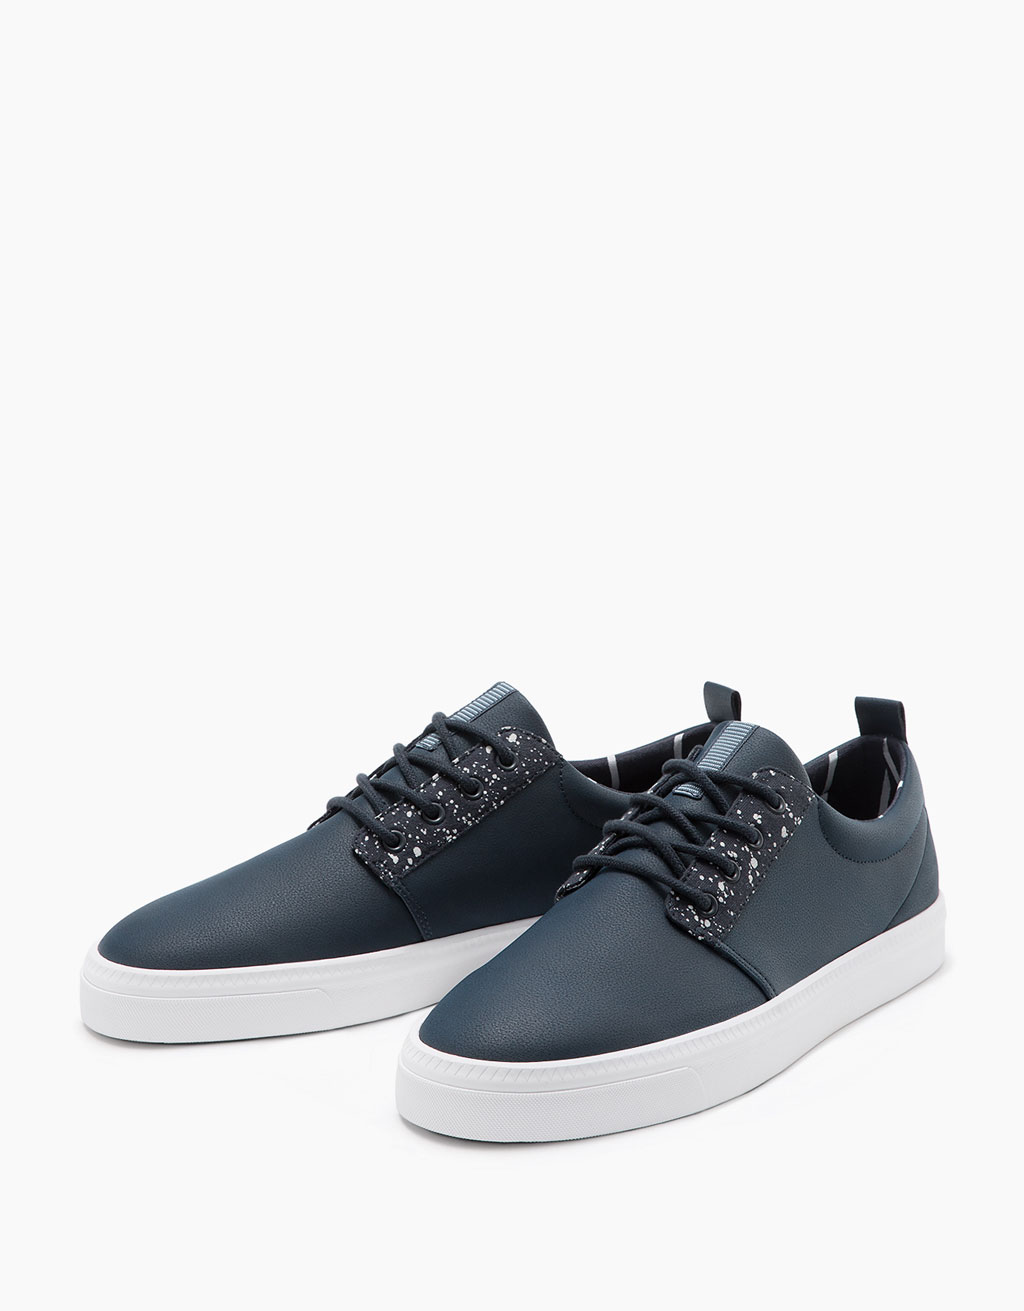 Men's lace-up flecked sneakers